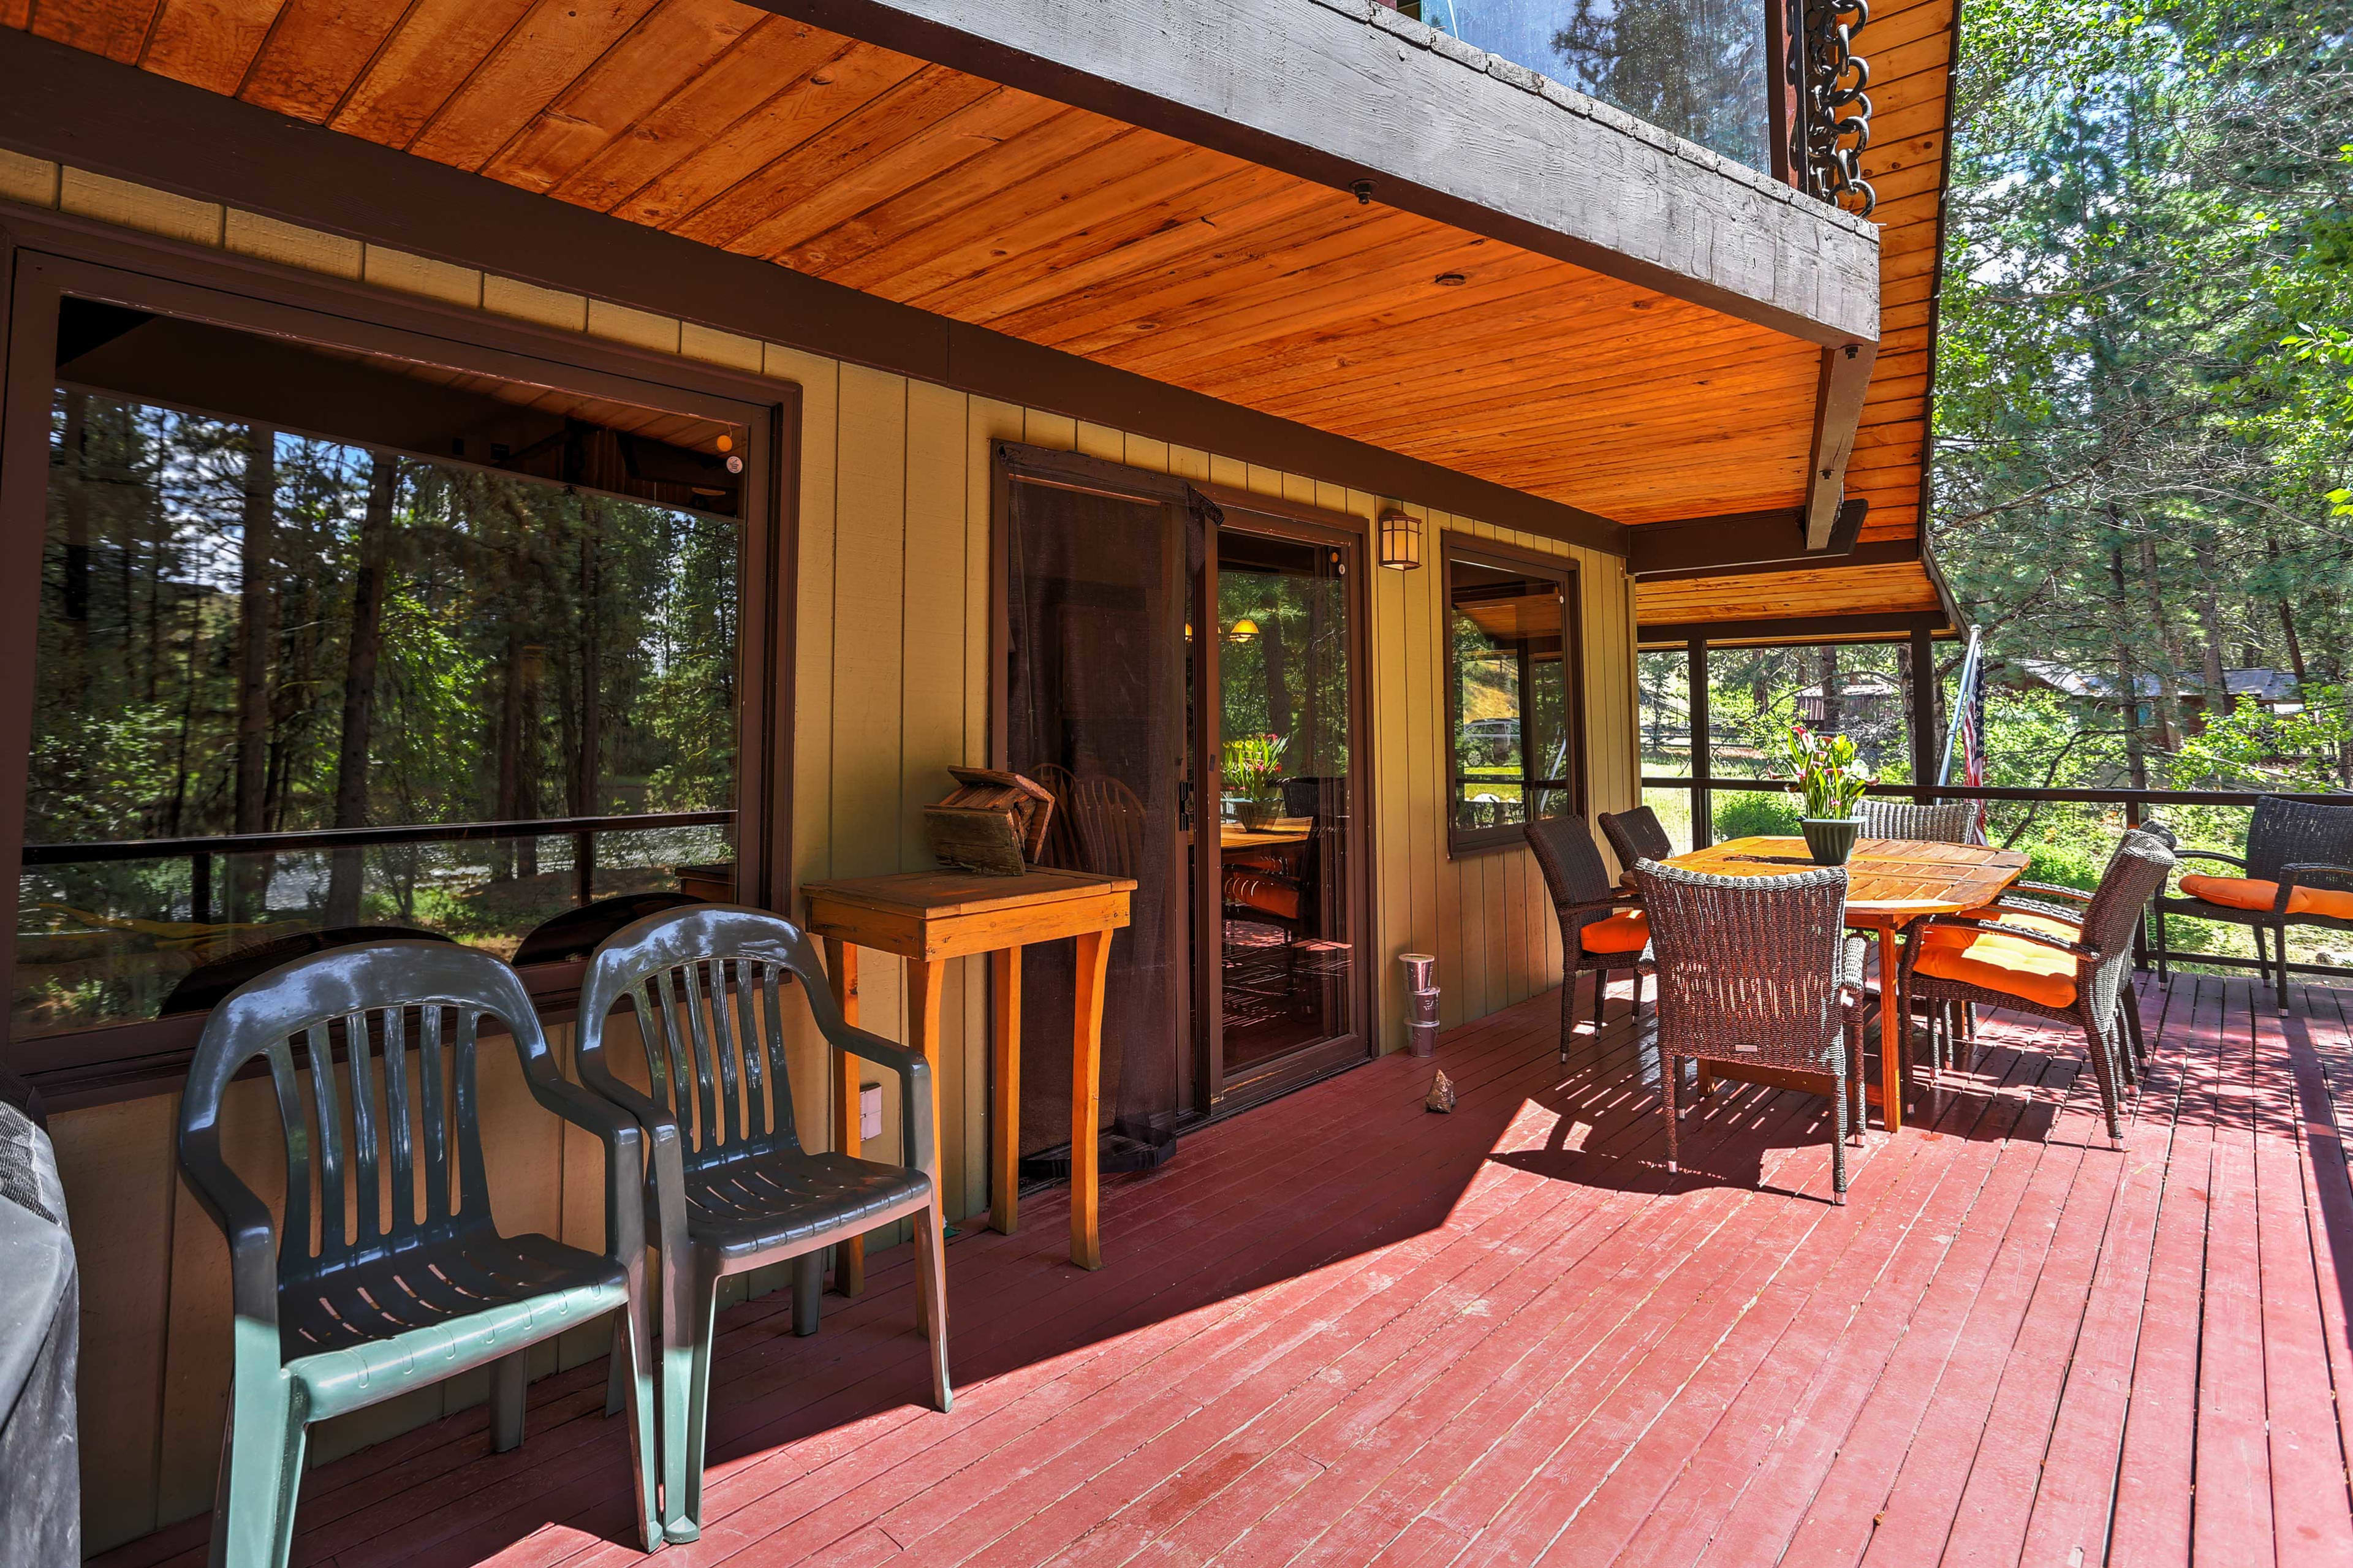 The back deck has a gas grill and patio table for al fresco cooking and dining!